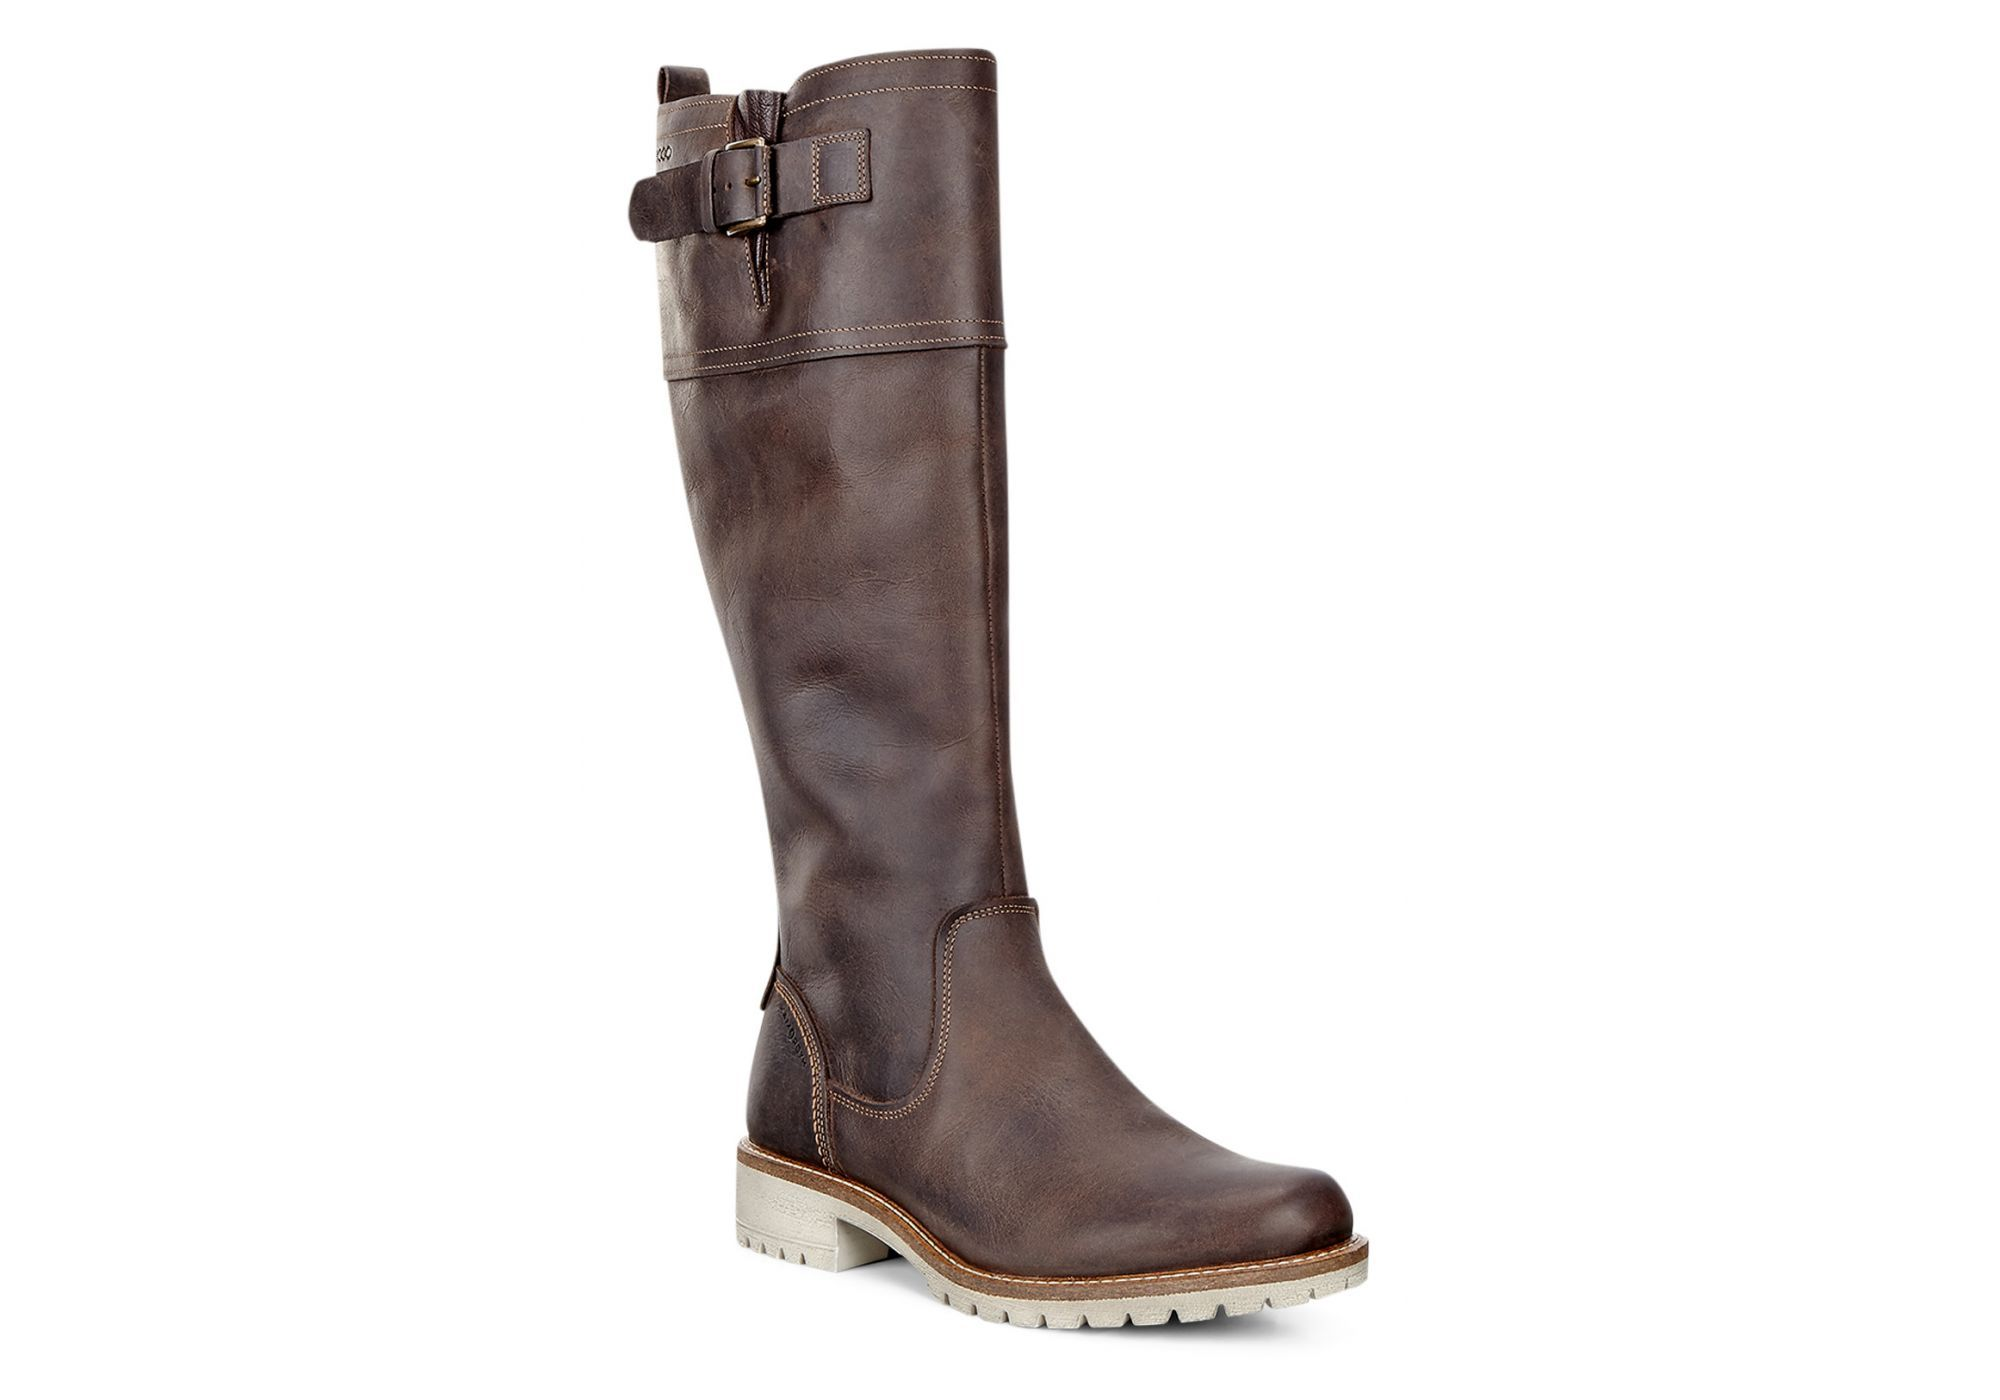 Elaine Casual Coffee Ladies 24473302072 Ecco BootsShoes yw80vmNOn